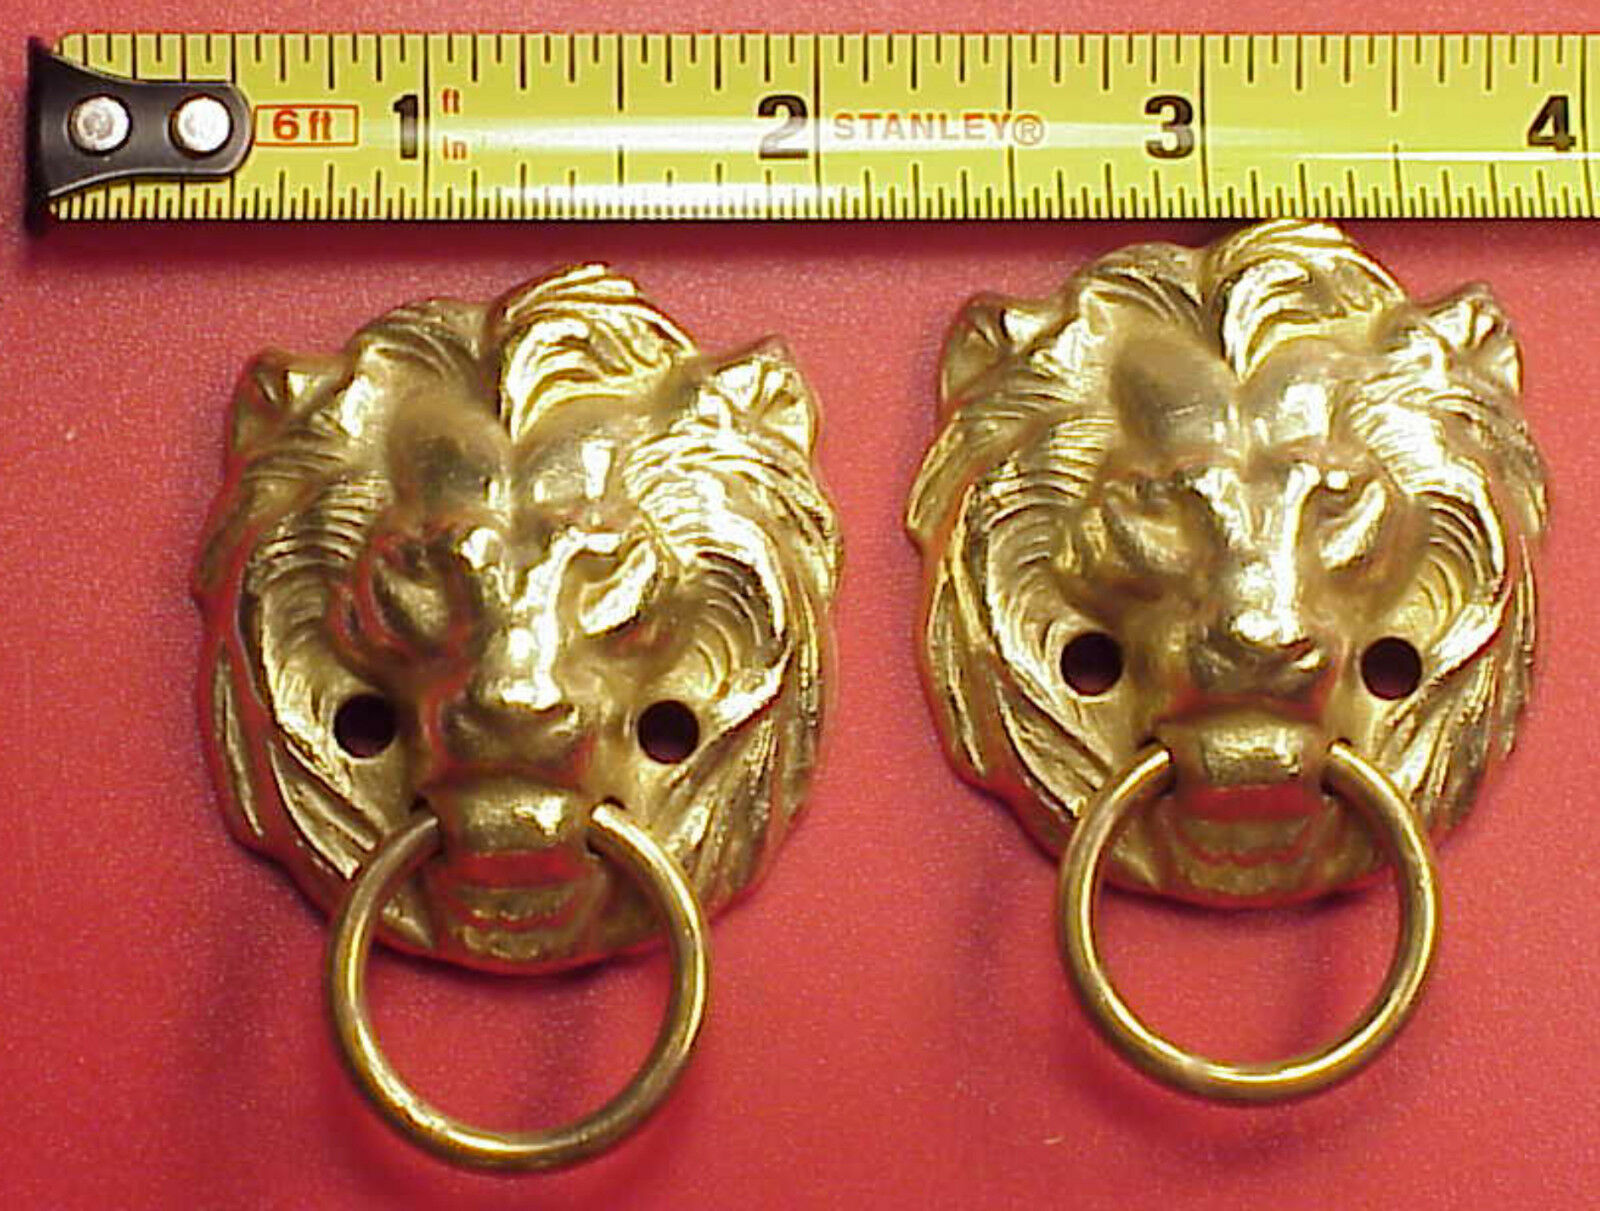 Craft Clock Parts Lion Solid Brass Handles Mantle Clock 1 3/4 Inch Altered Art